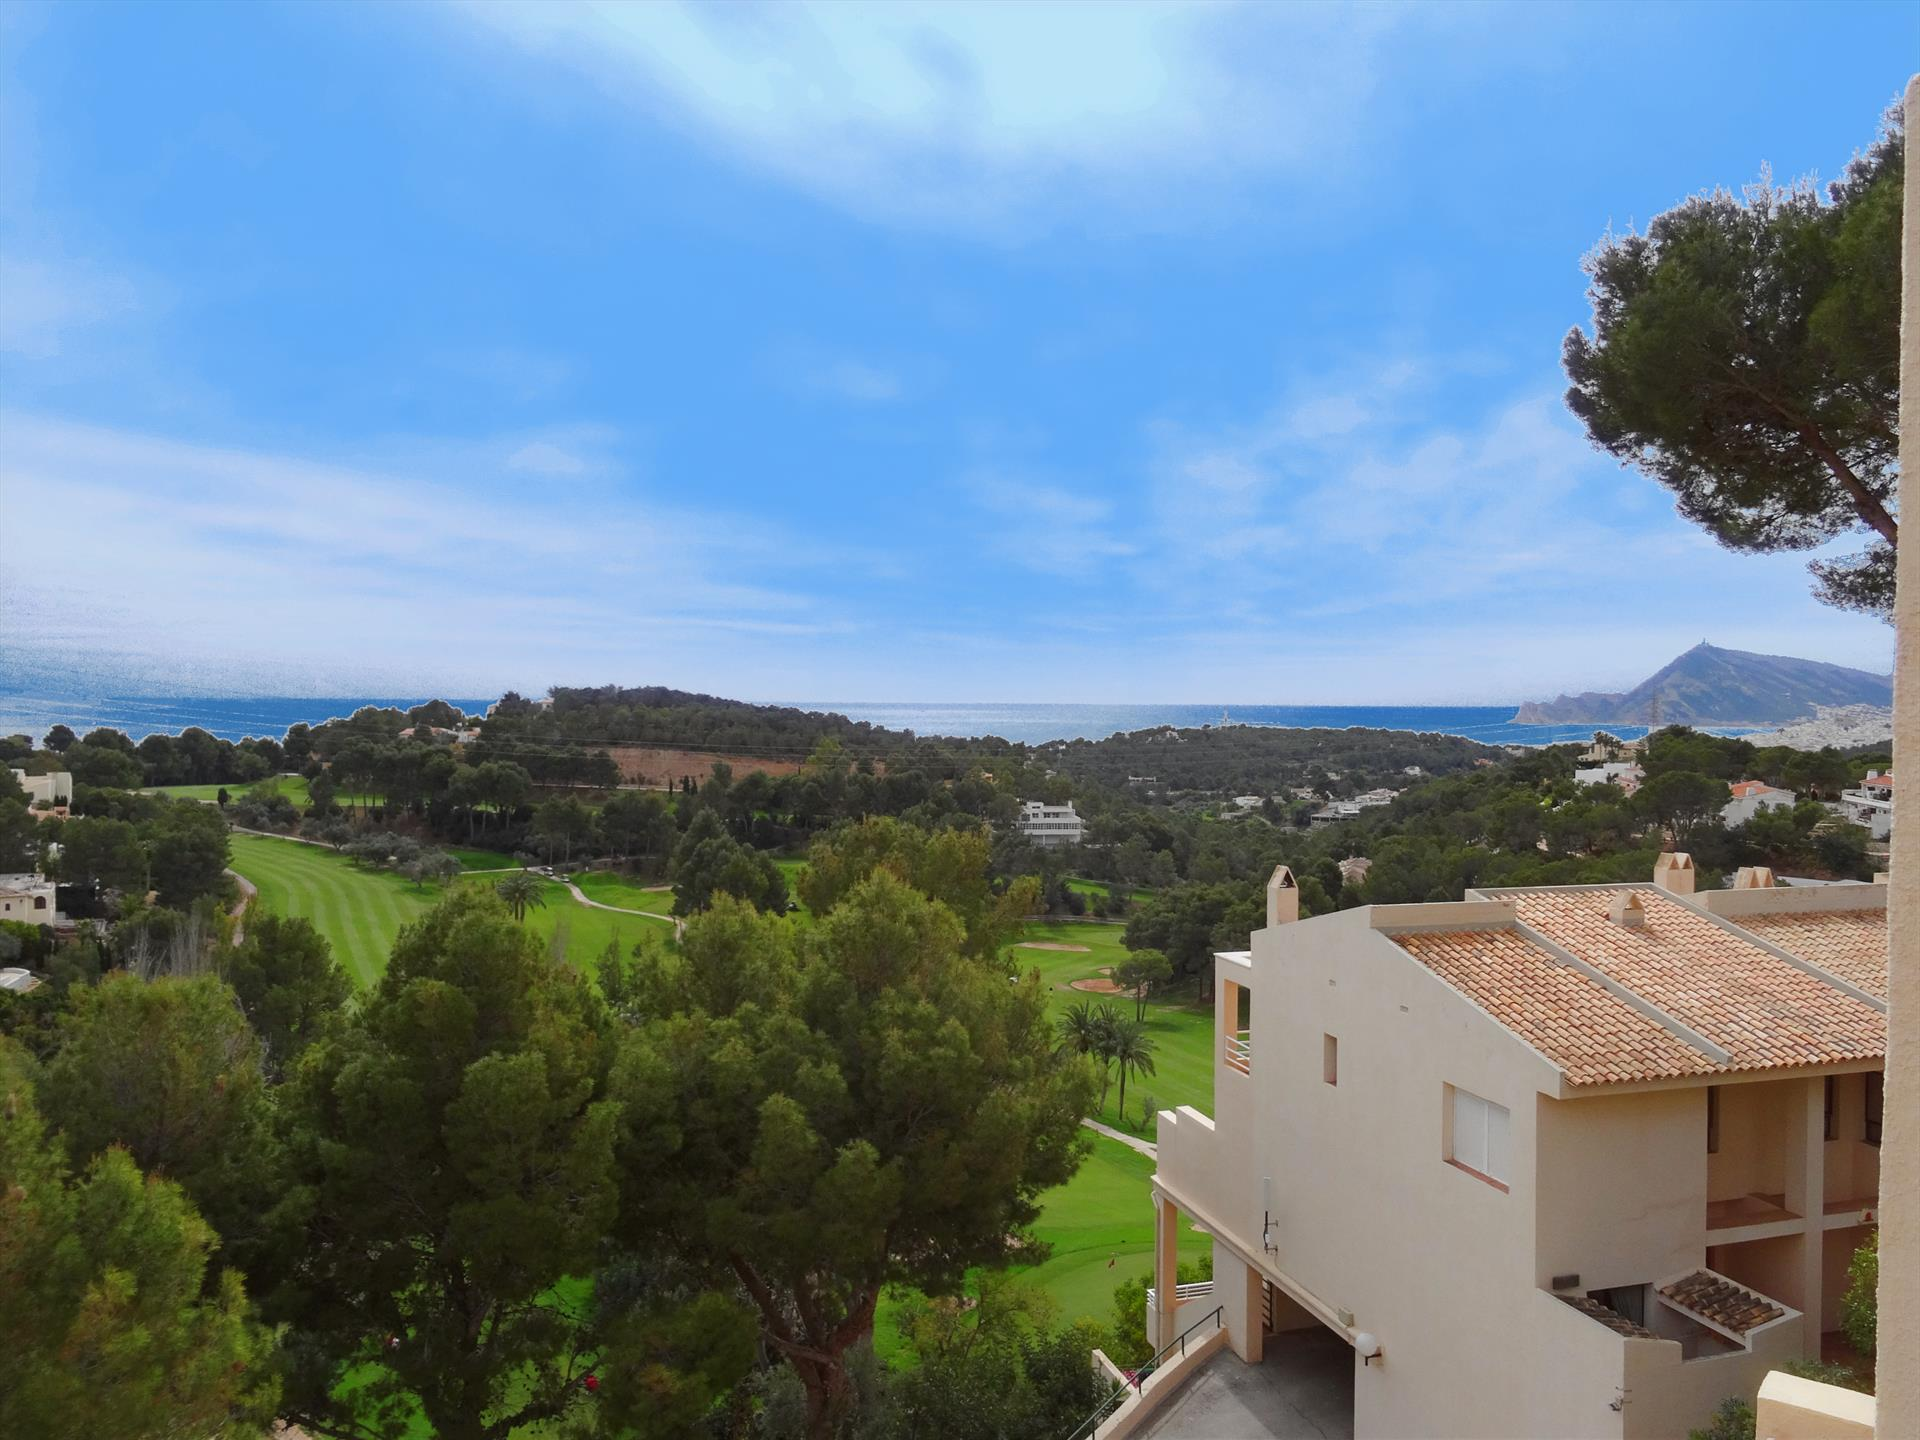 Lovely and cheerful apartment in Altea, on the Costa Blanca, Spain for 6 persons